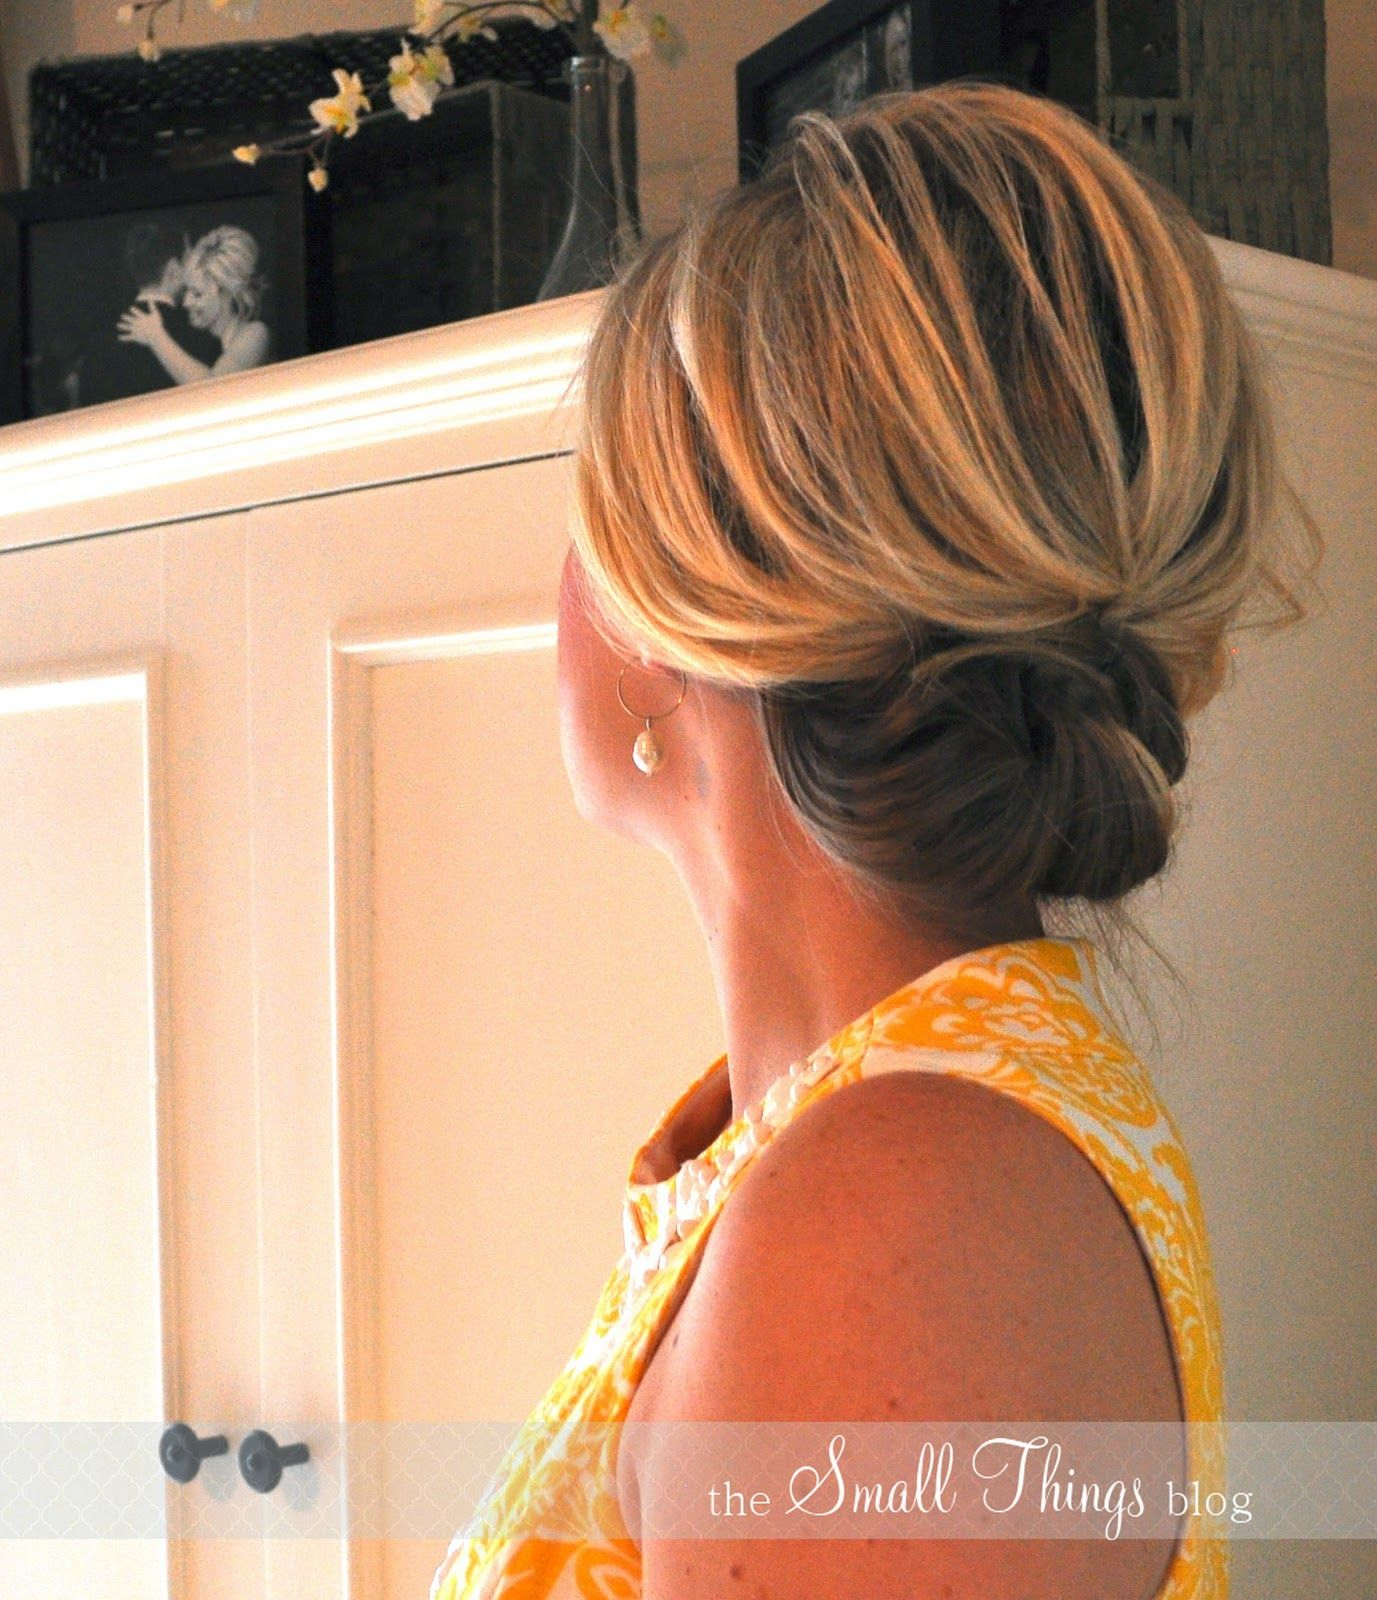 The Small Things Blog: The Small Things Blog: The Chic Updo And You Don't Have To